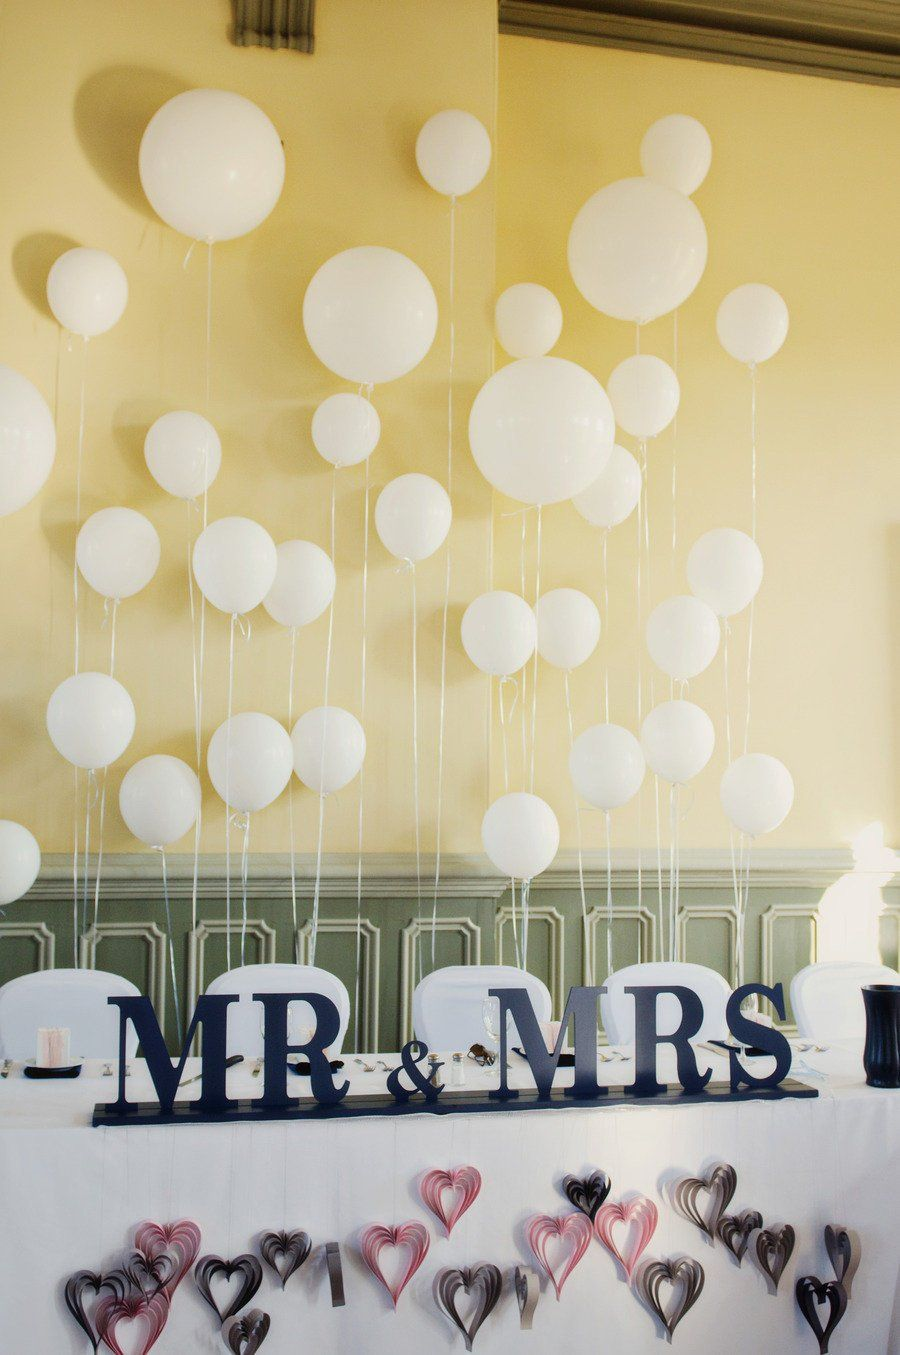 Create a Balloon Wall Behind the VIP Seating | Balloon wall, Wedding ...